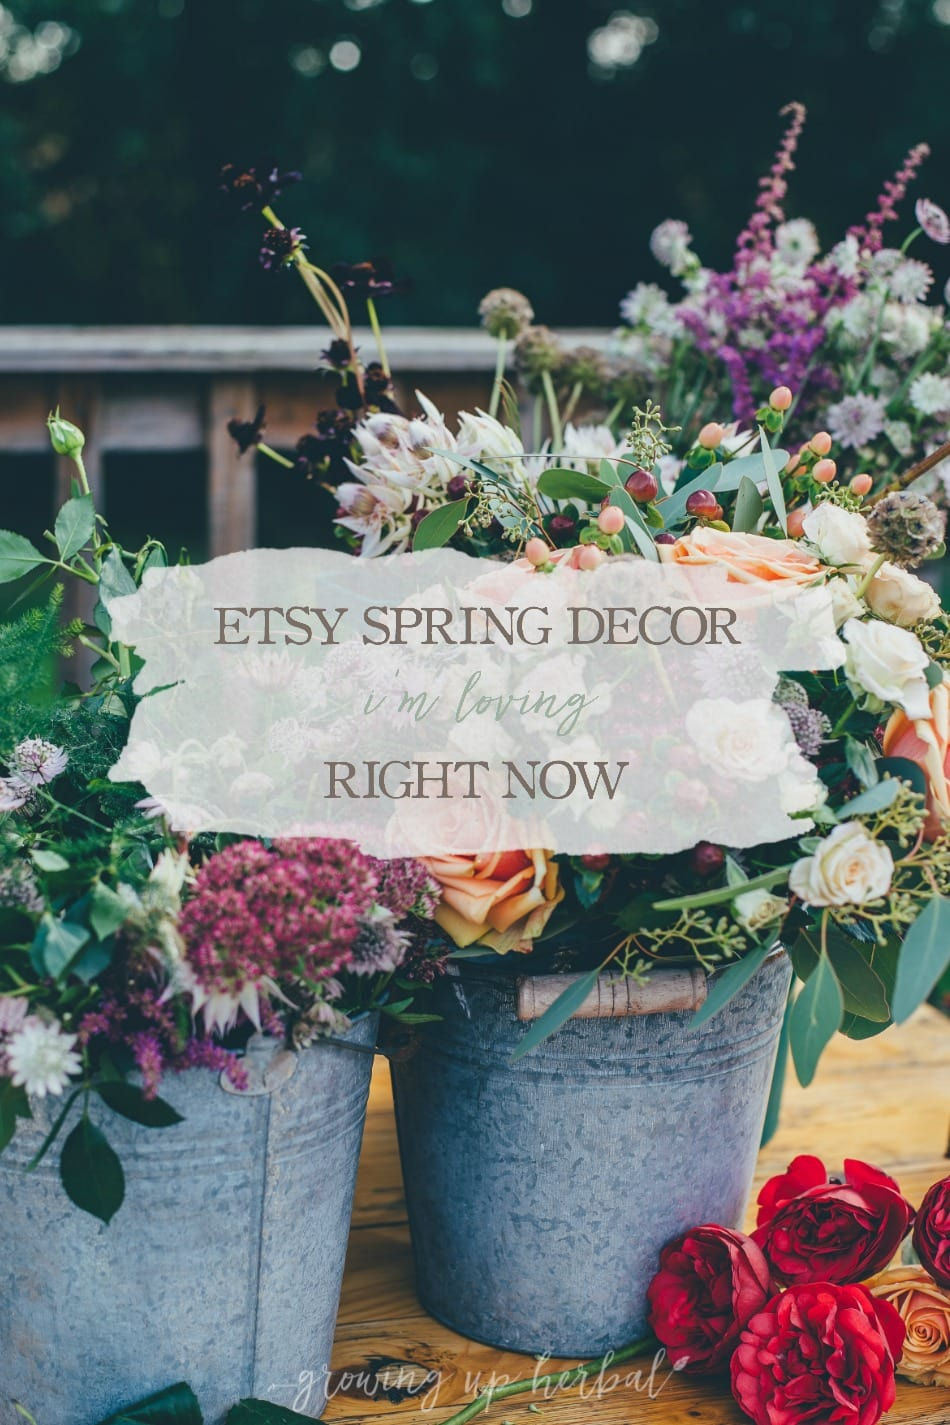 Etsy Spring Decor I'm Loving Right Now | Growing Up Herbal | If you're like me, you're ready to give your home a spring facelift. Here's some handmade spring decor from Etsy that I'm loving this season!